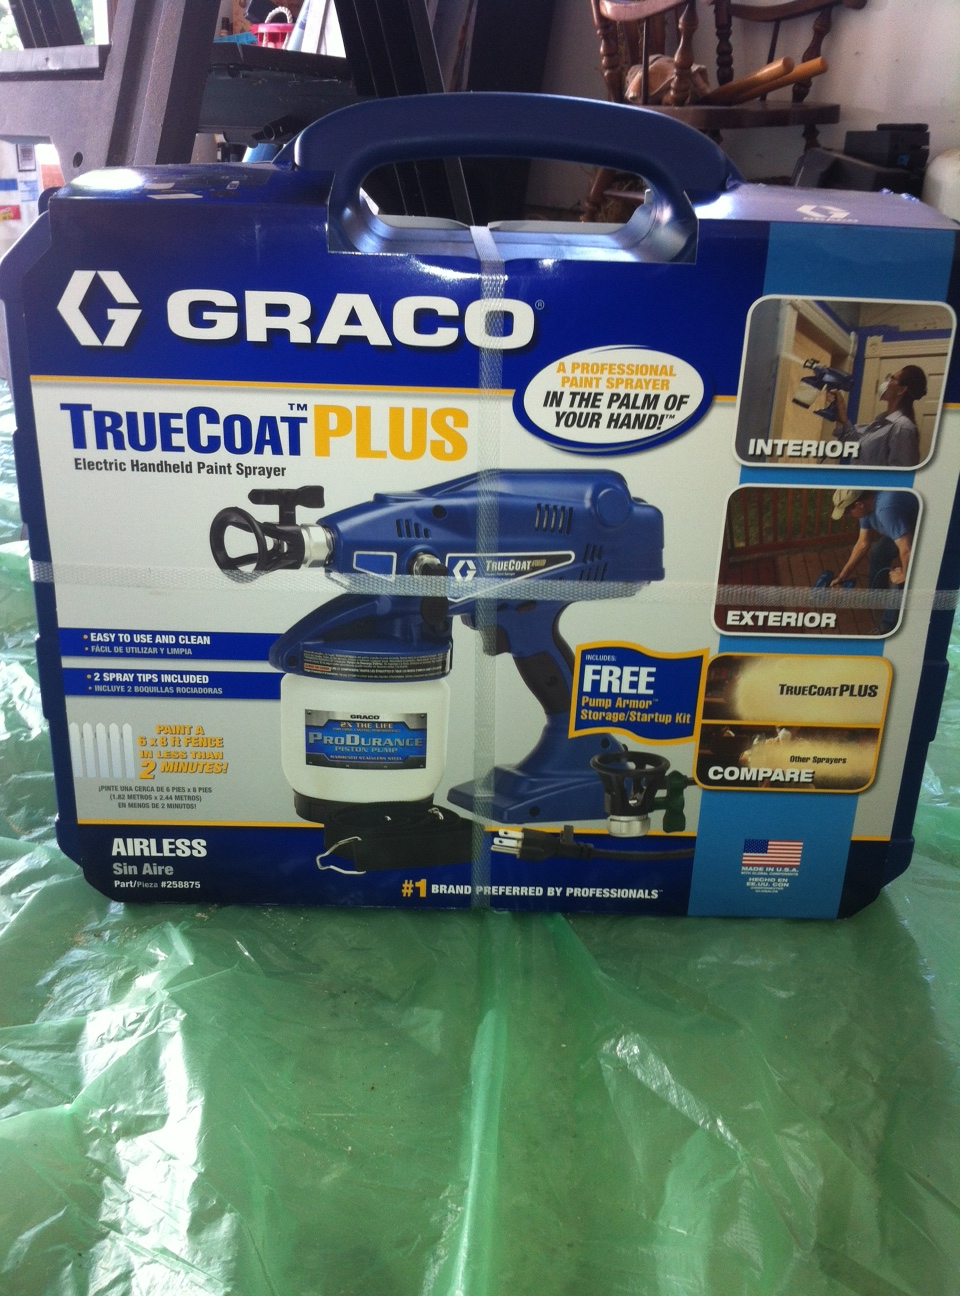 Graco TrueCoat Plus